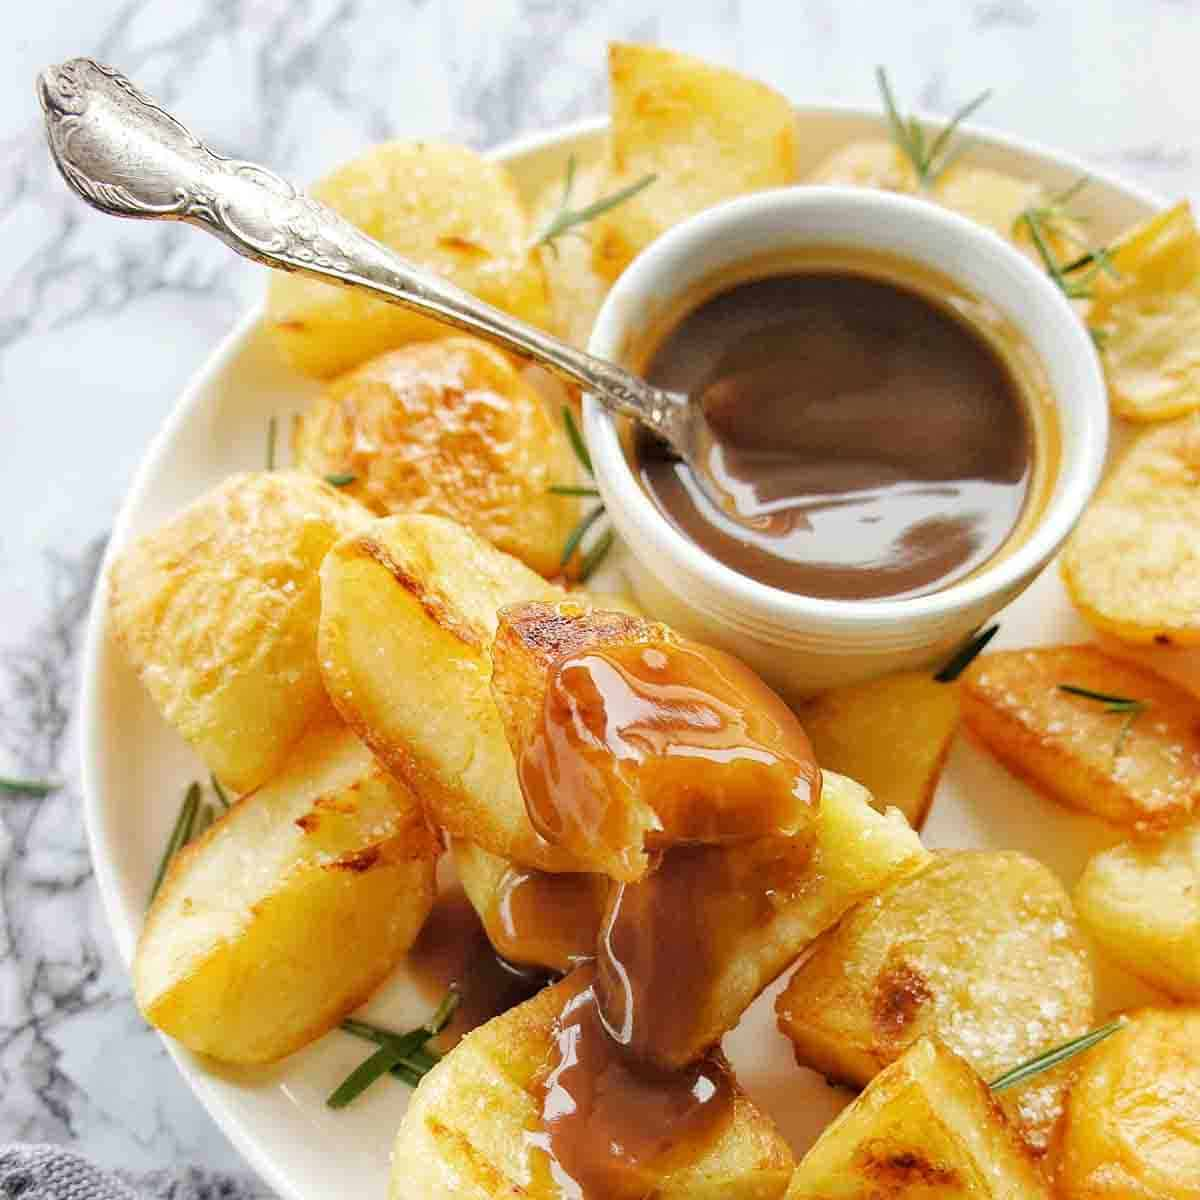 Roast Potatoes on a white plate with a small bowl of gravy